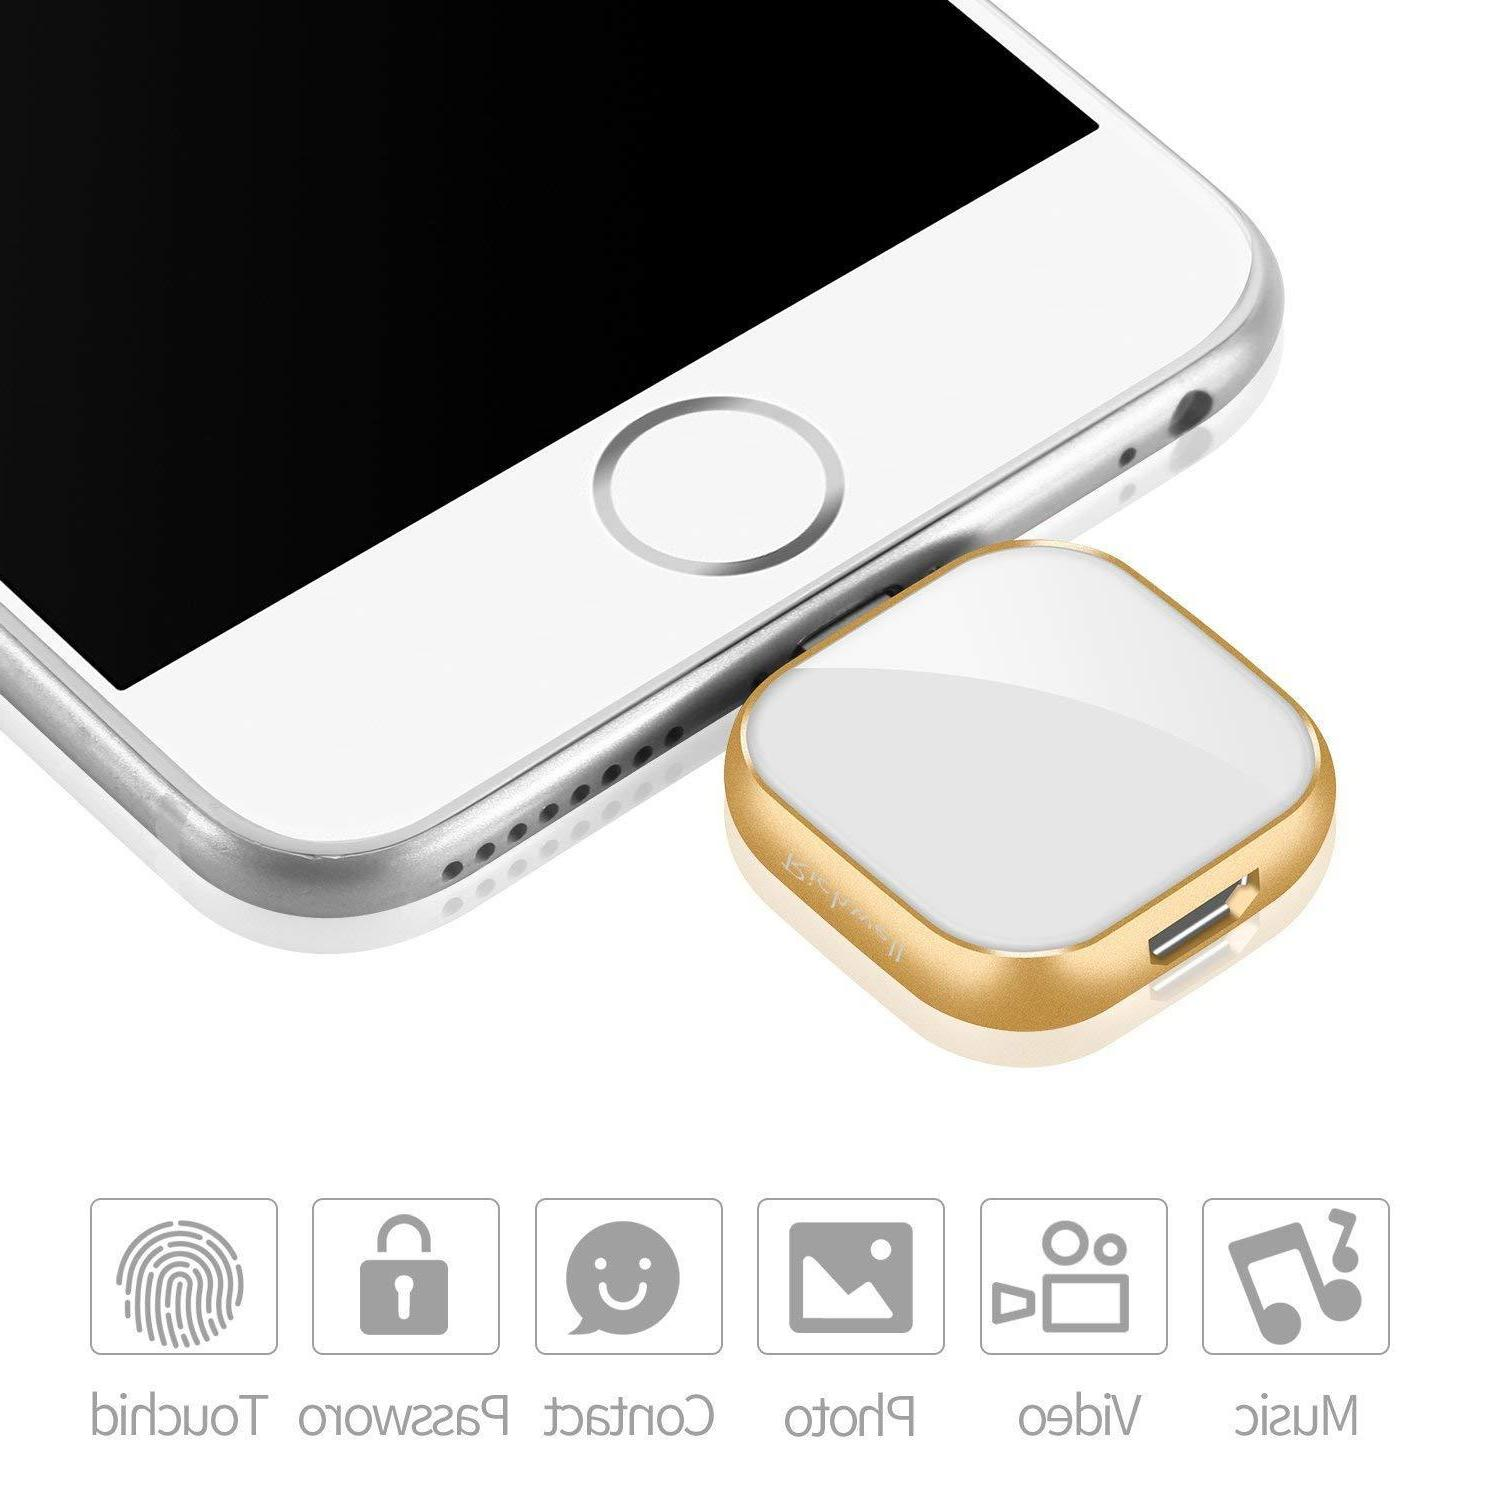 64GB OTG Flash Drive for iPhone, and